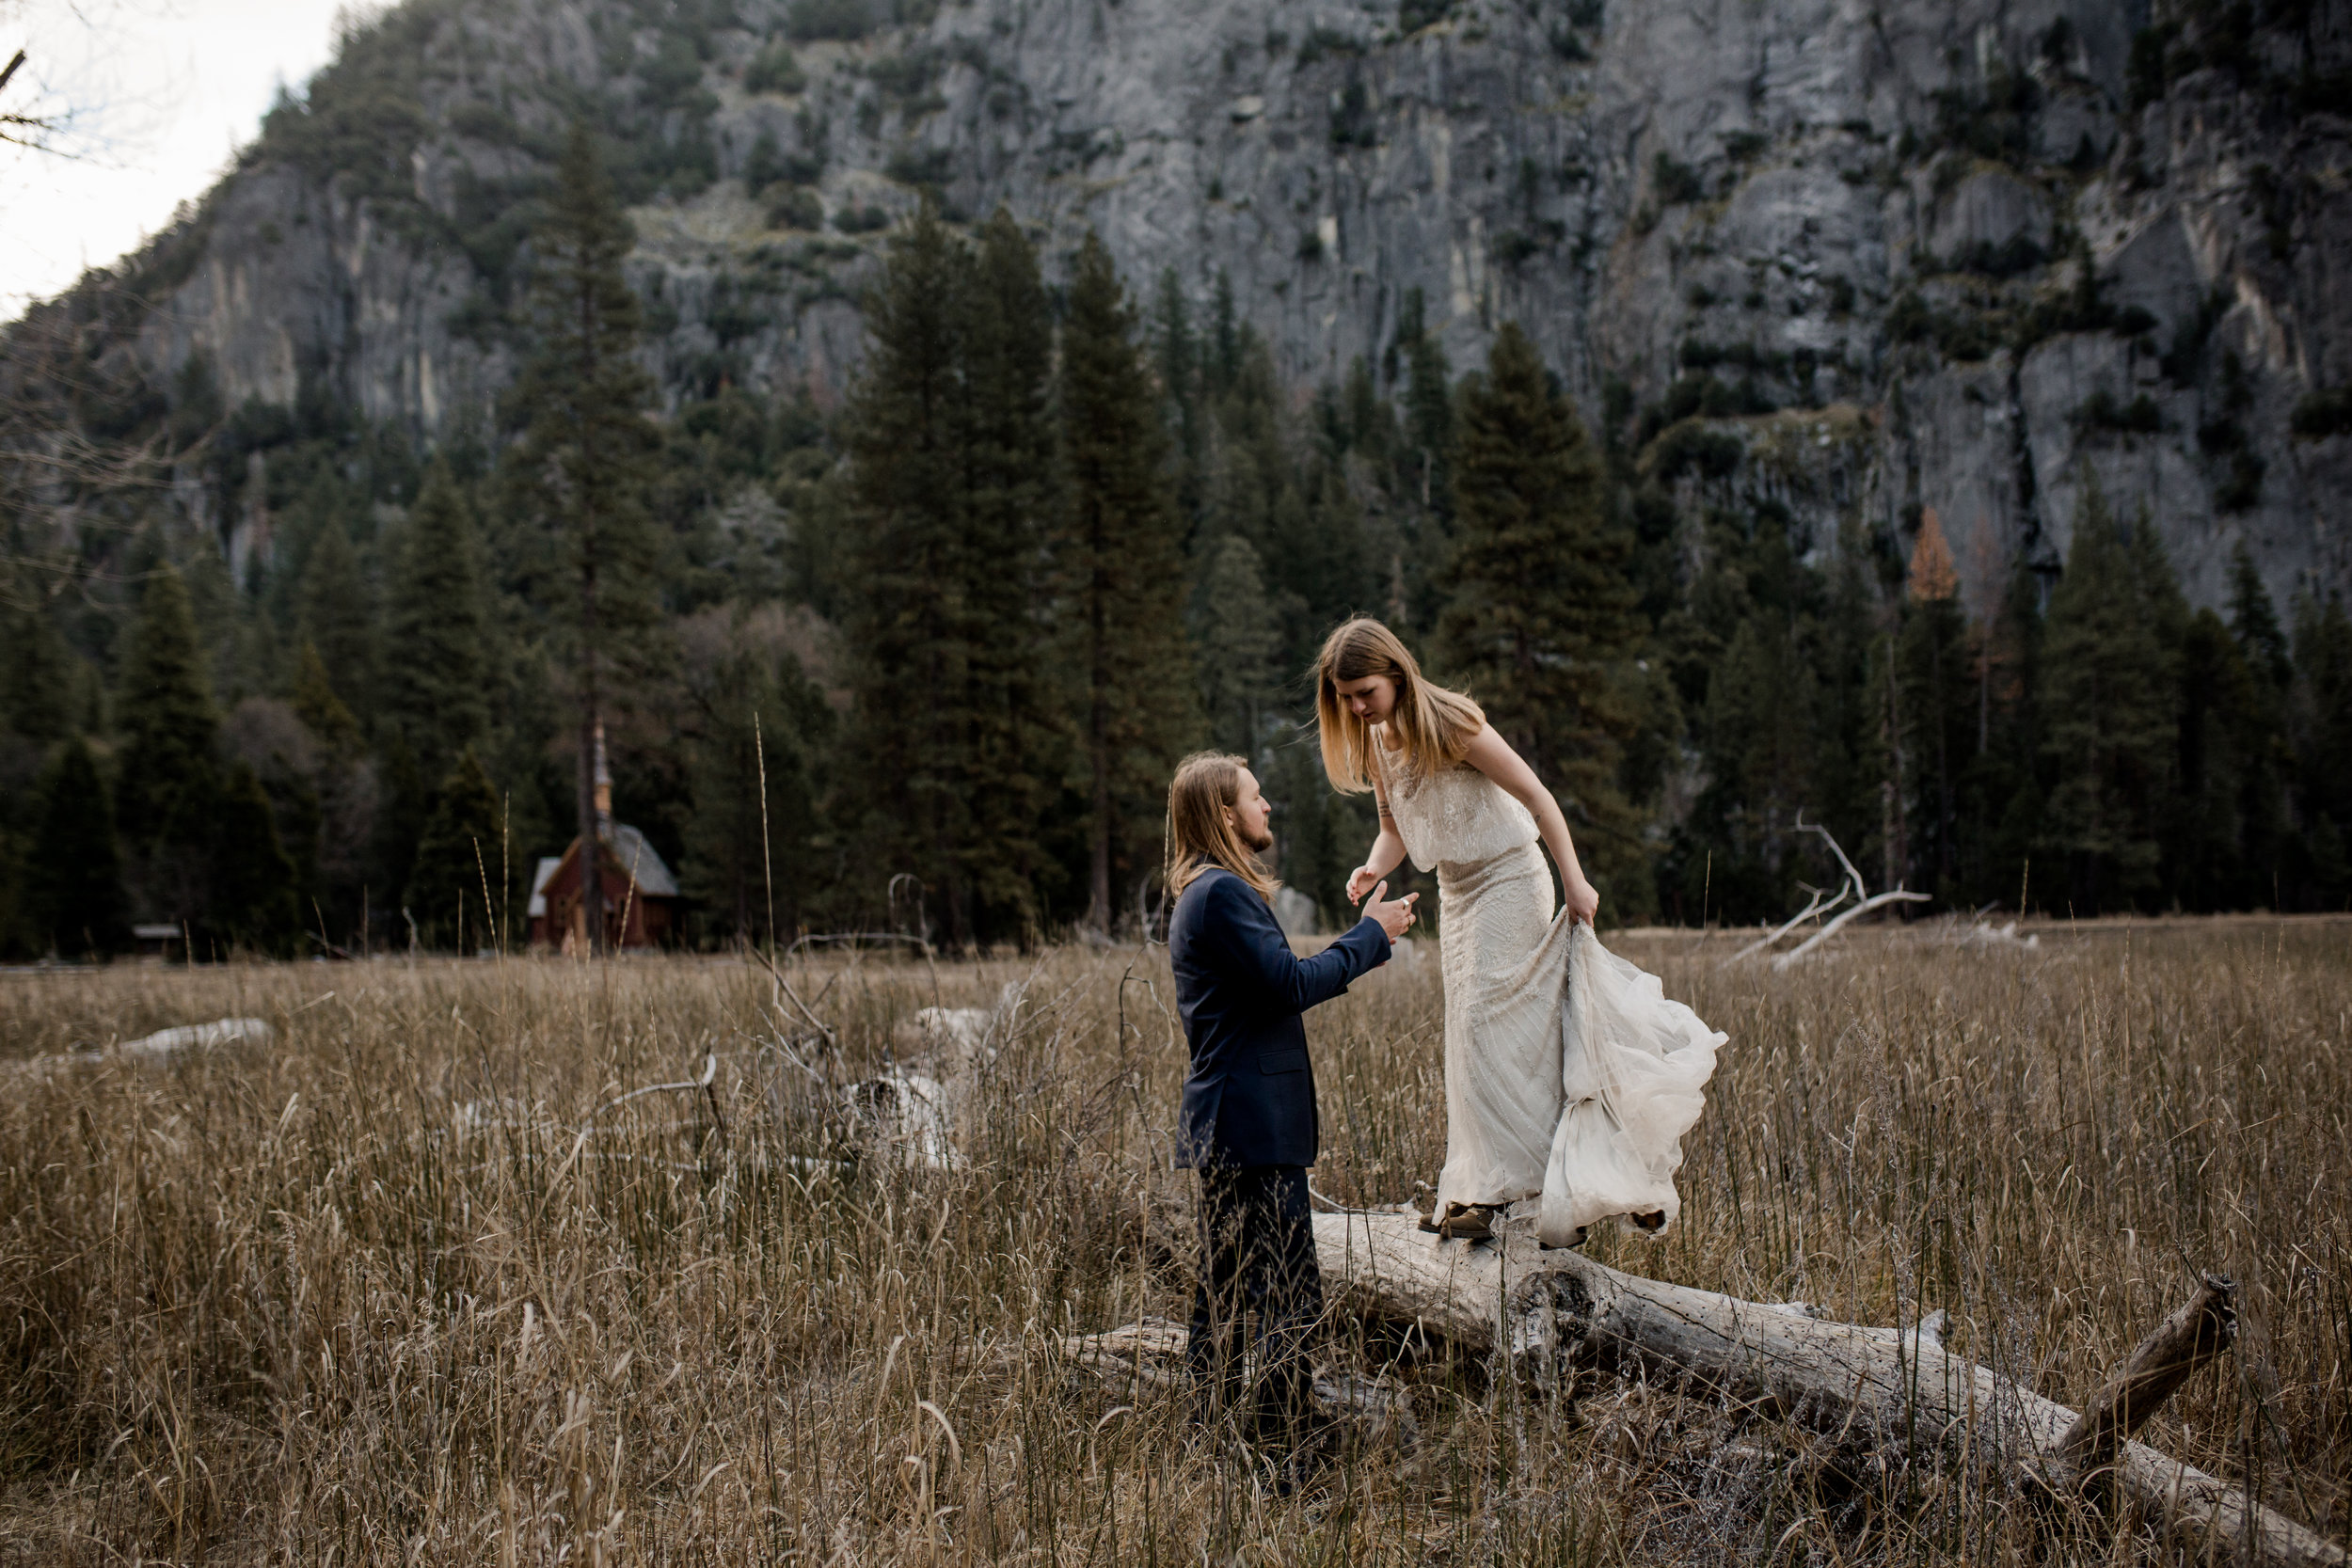 nicole-daacke-photography-yousemite-national-park-elopement-photographer-winter-cloud-moody-elope-inspiration-yosemite-valley-tunnel-view-winter-cloud-fog-weather-wedding-photos-83.jpg